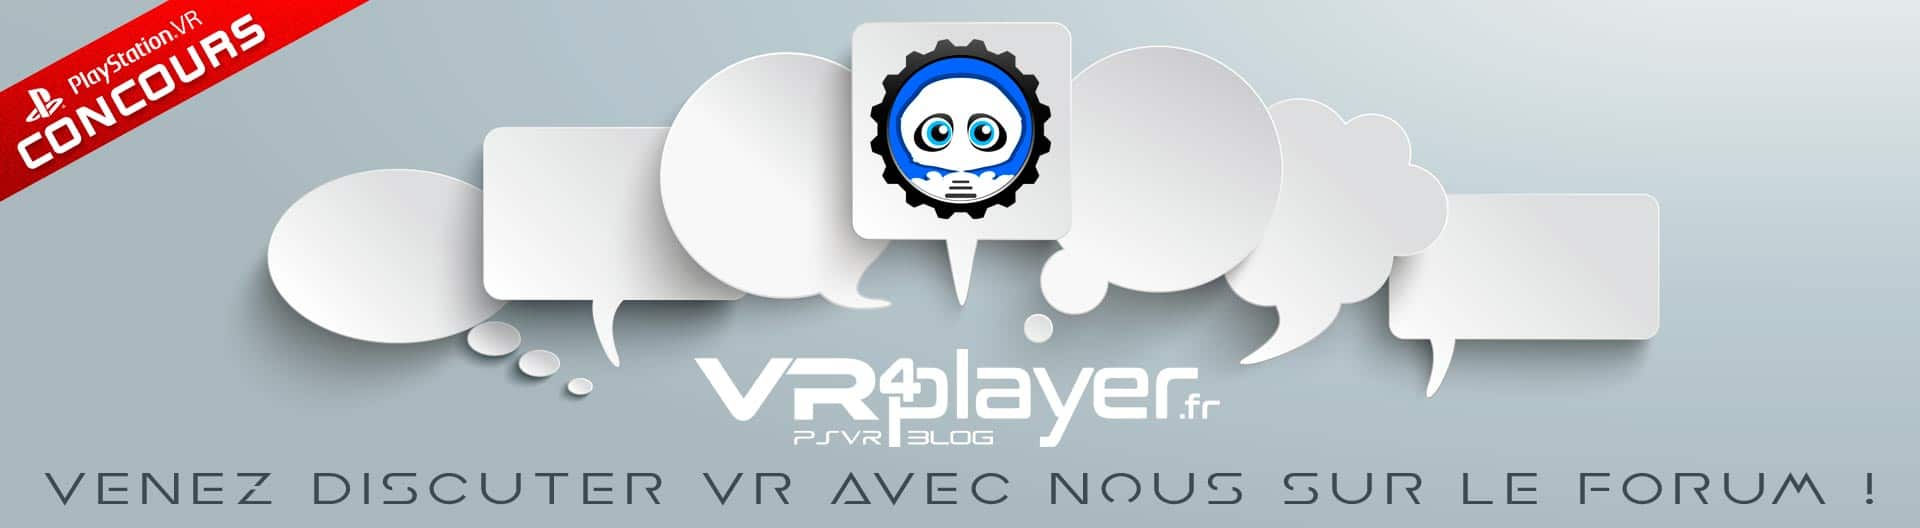 FORUM de discussions VR4PLAYER